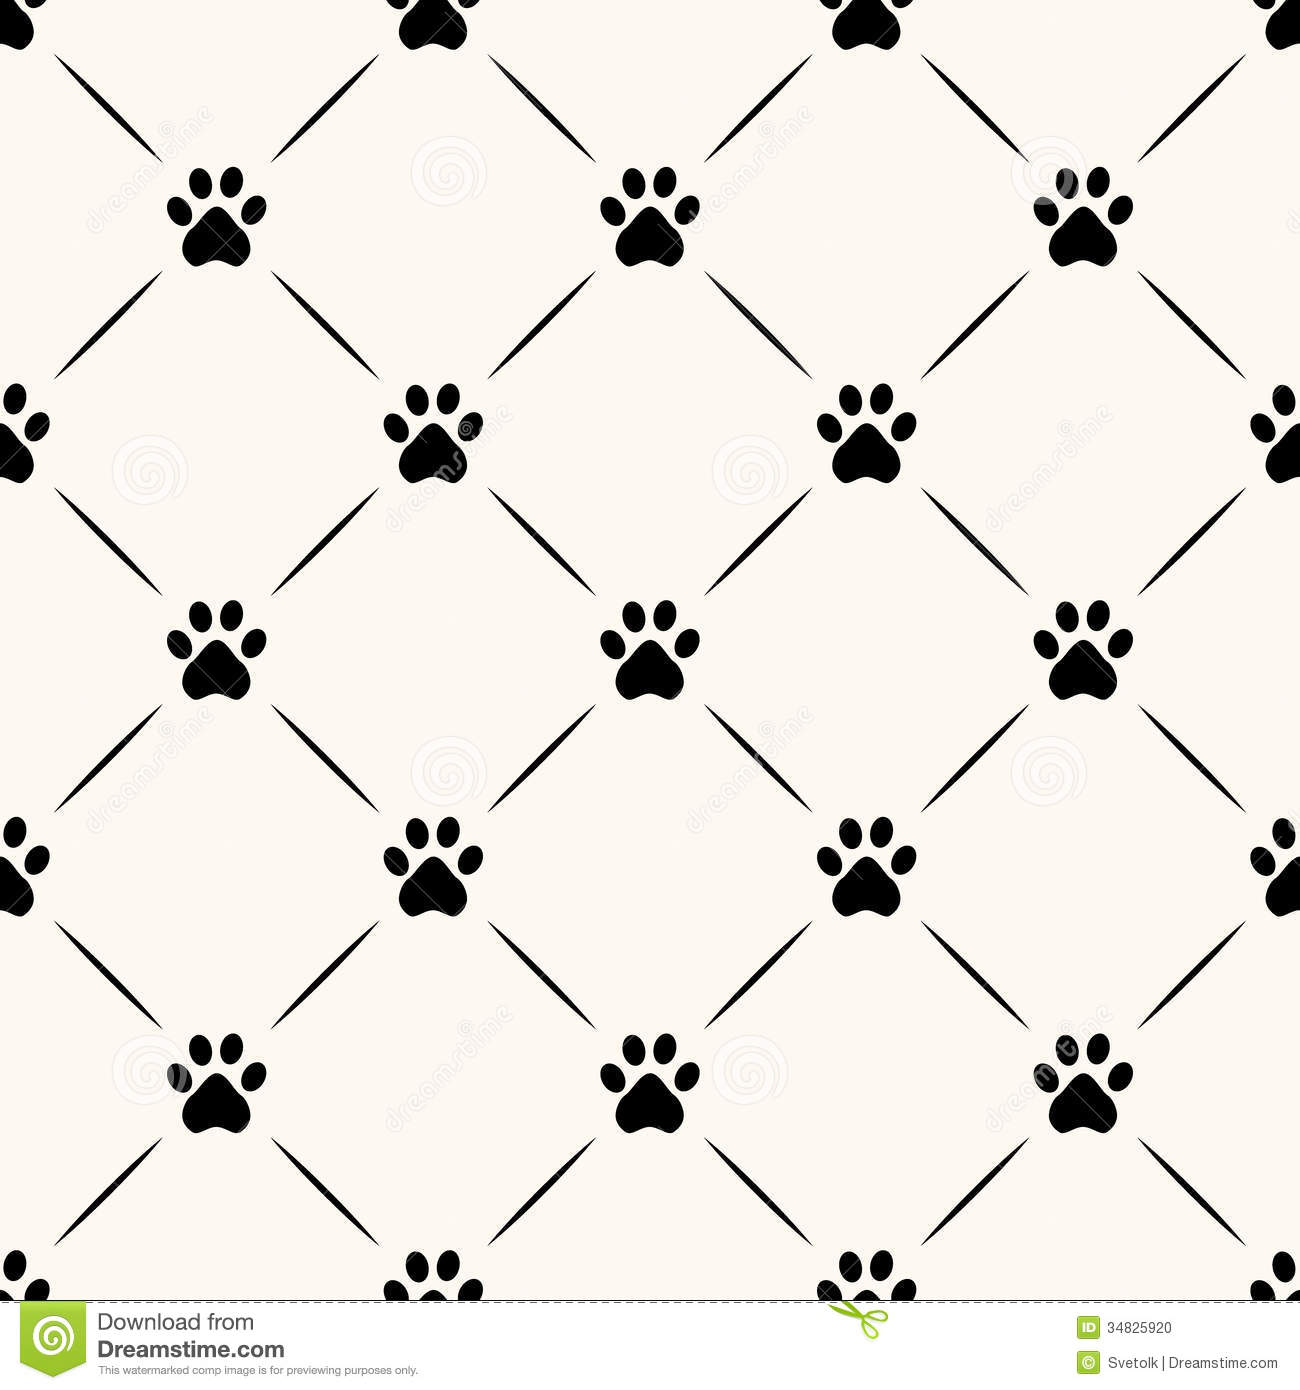 Can I Put Wallpaper On Top Of Wallpaper: Seamless Animal Pattern Of Paw Footprint. Stock Photo